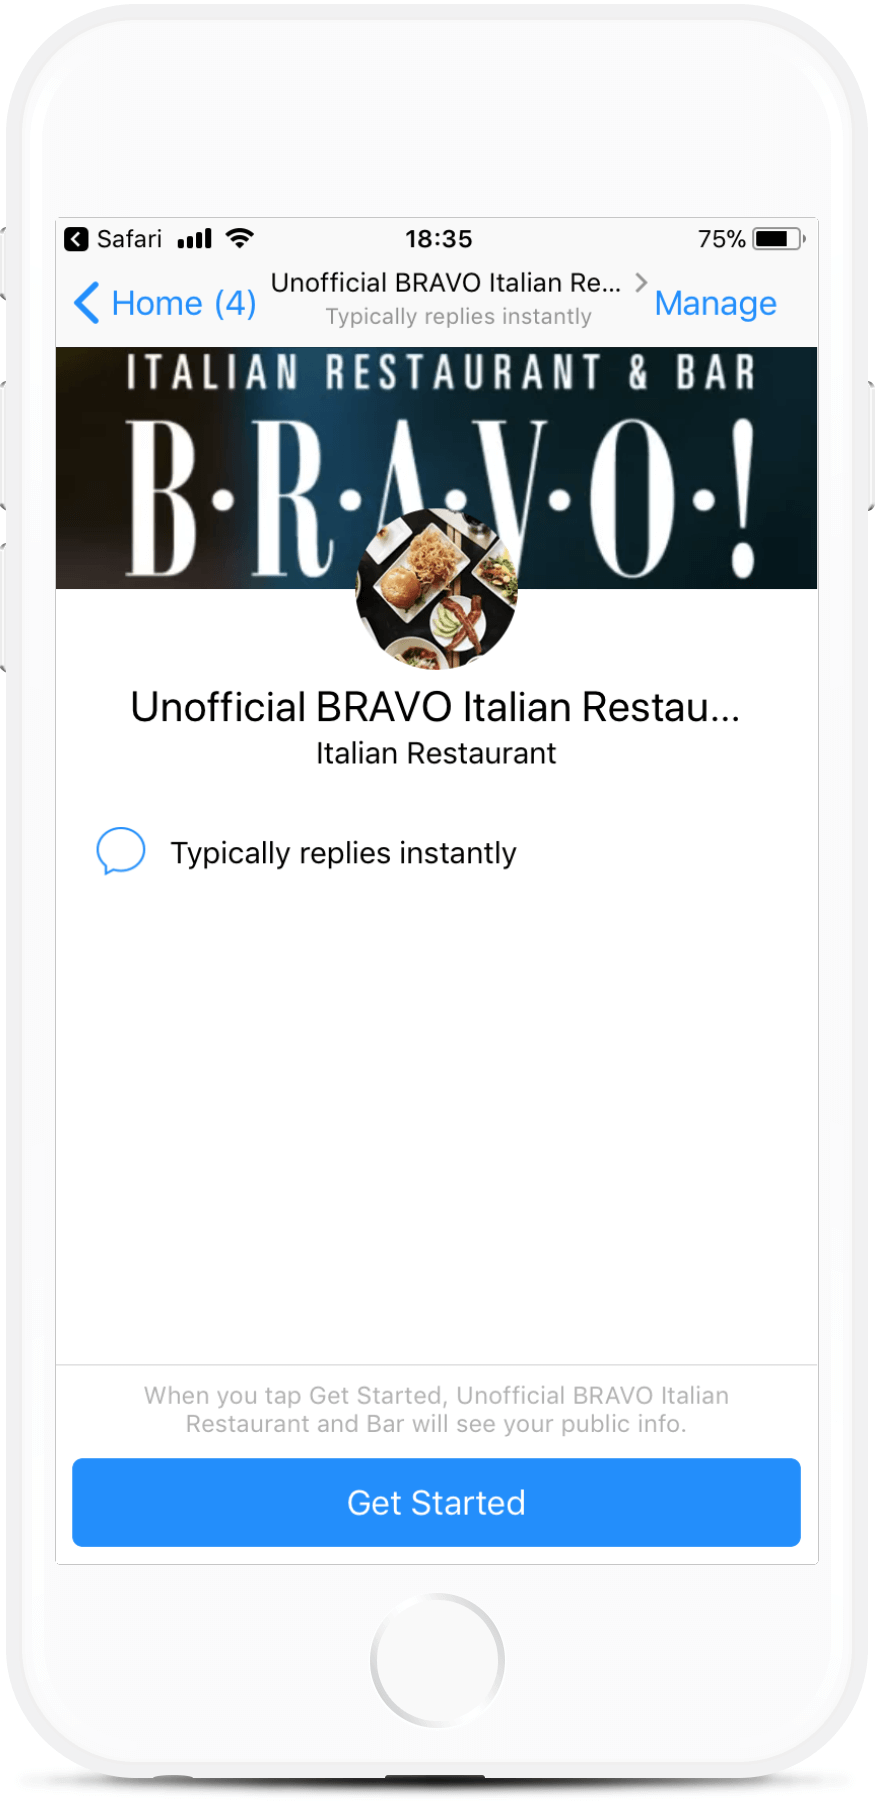 Restaurant and Catering Messenger Bot